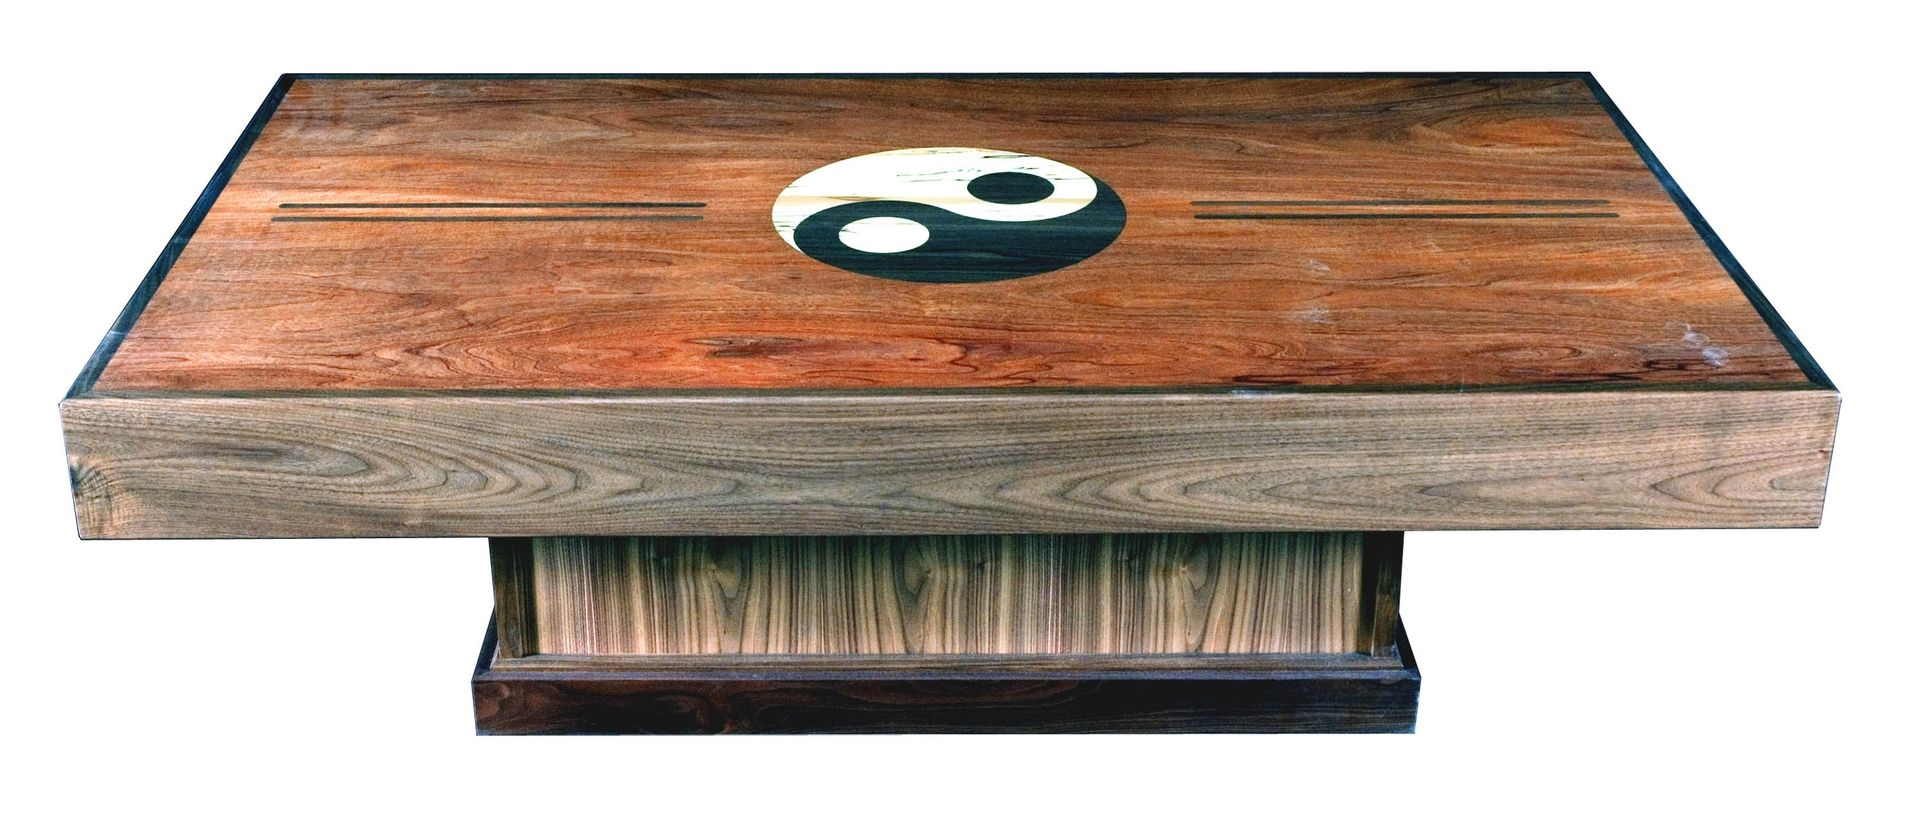 Handmade yin yang tean table by myers design inc for Table yin yang